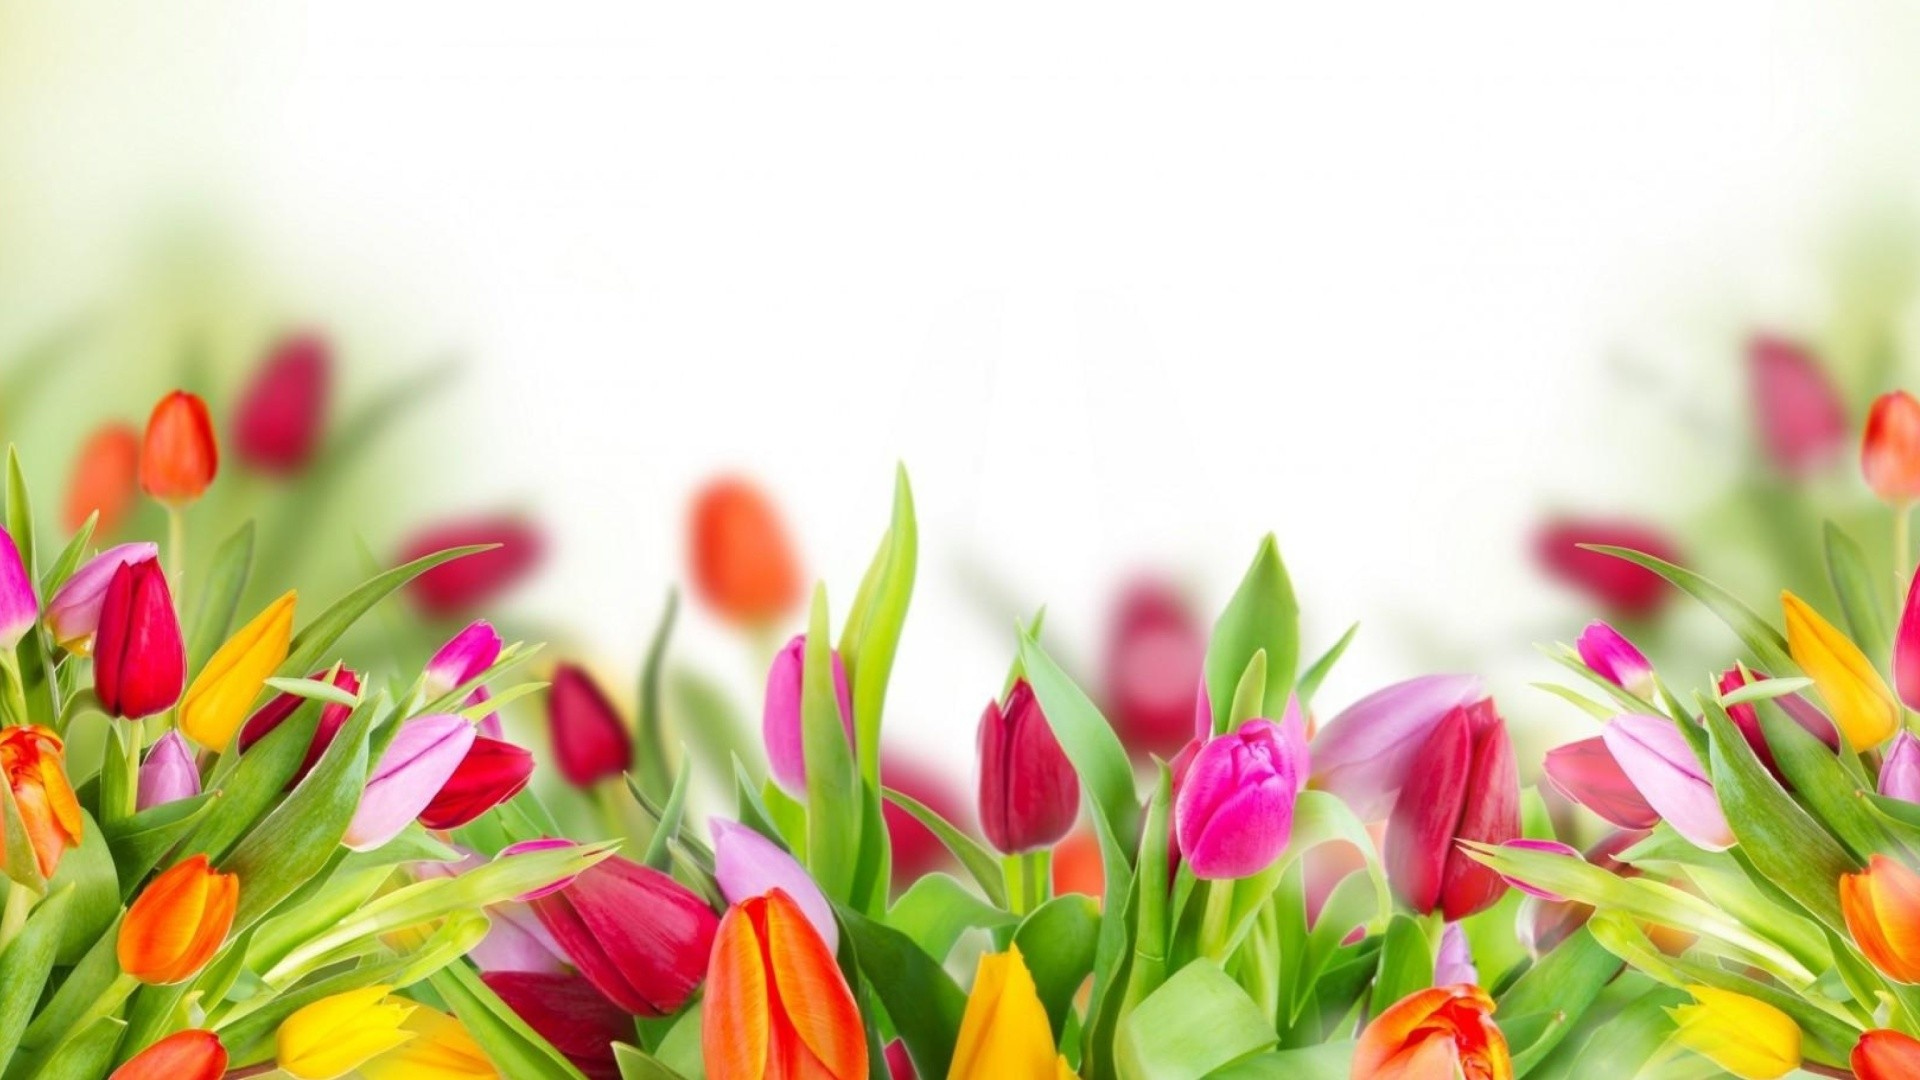 International Women's Day Flowers hd image download